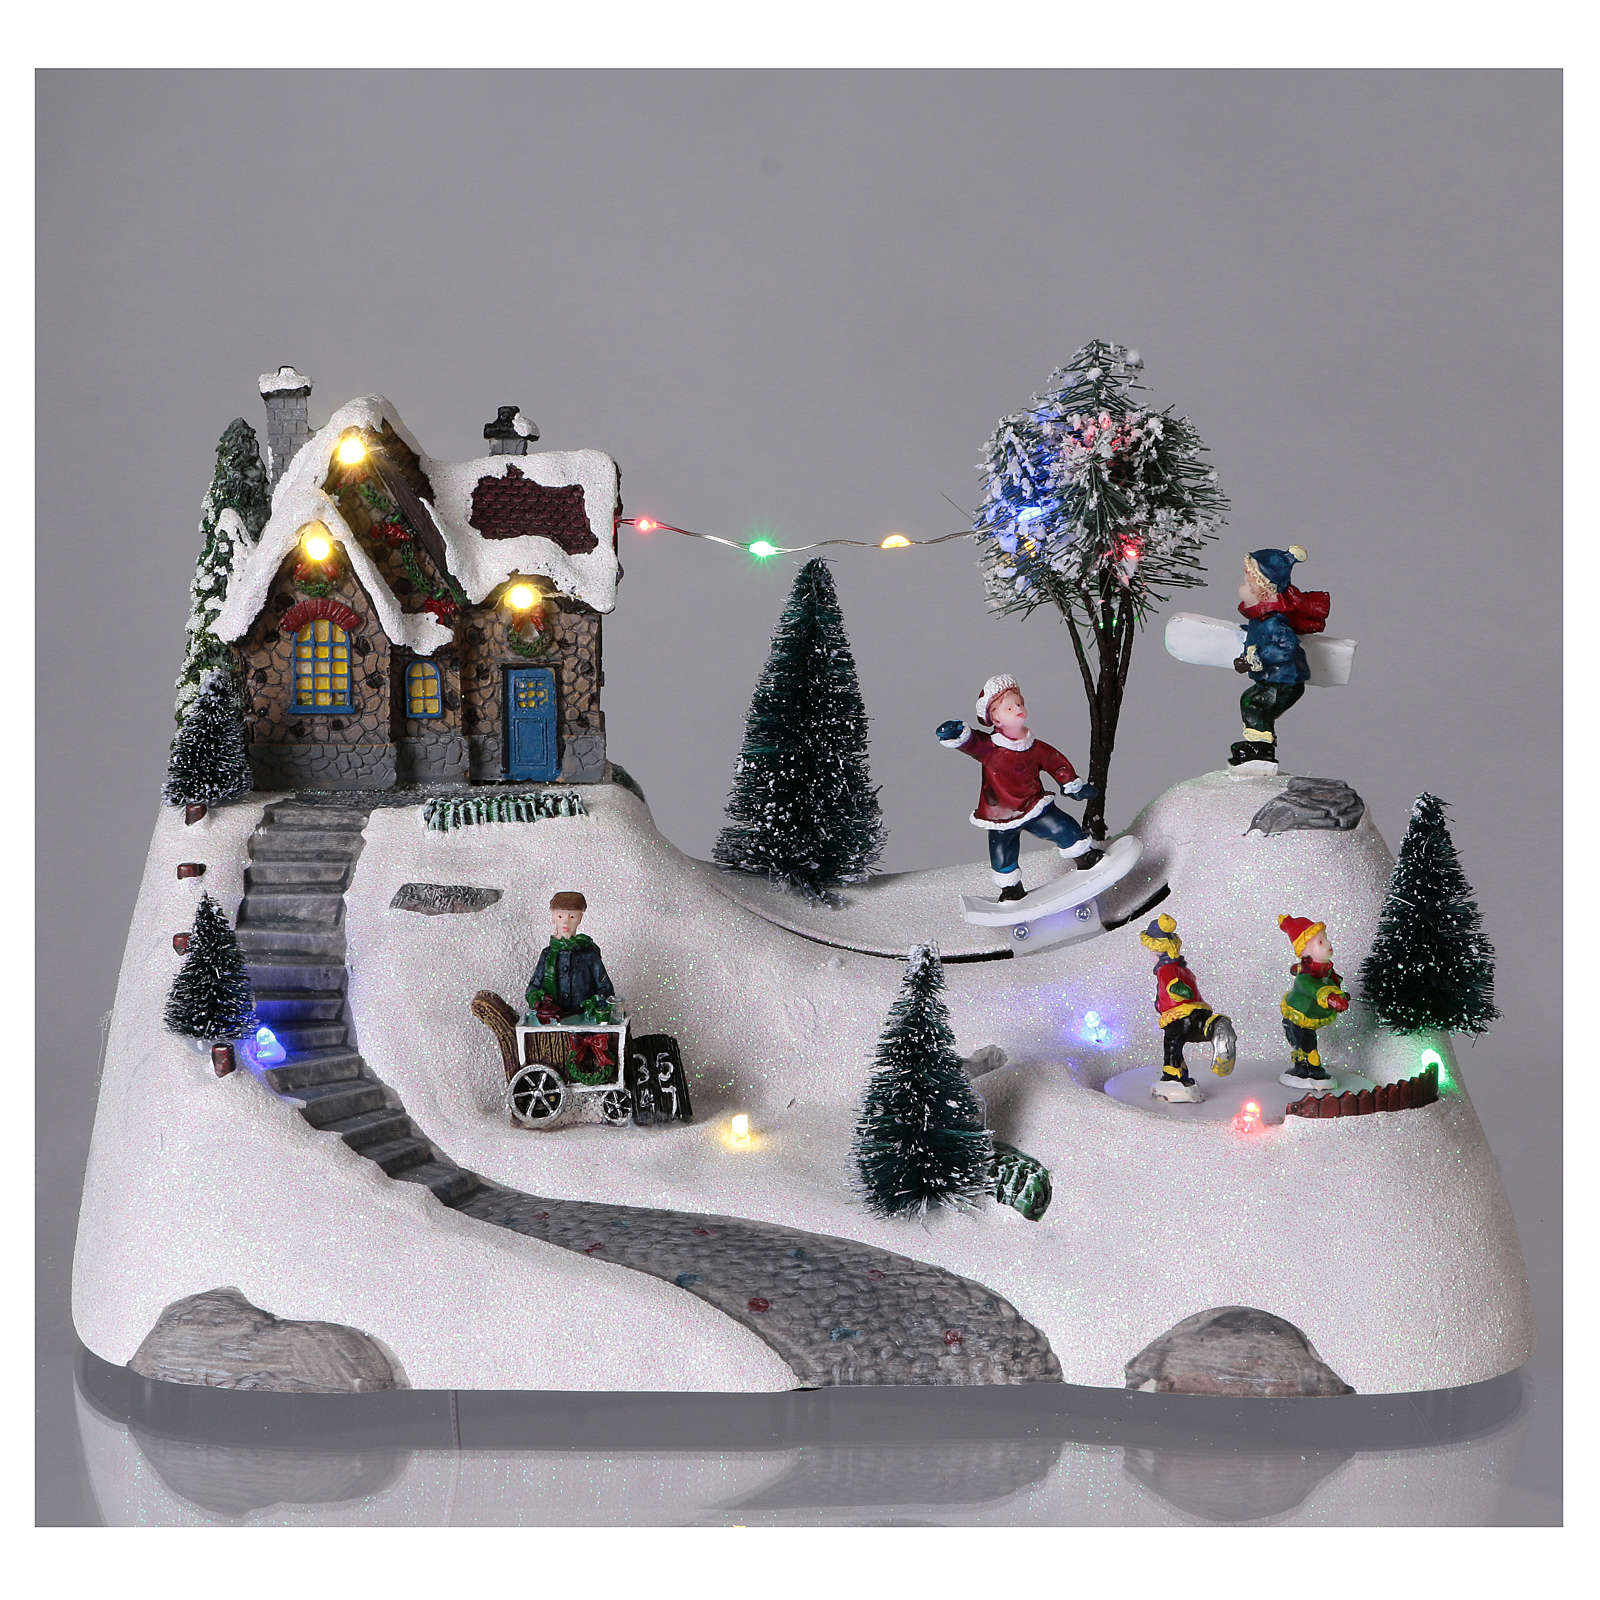 Moving christmas scene with music and ice skating rink 20x30x15 cm 3